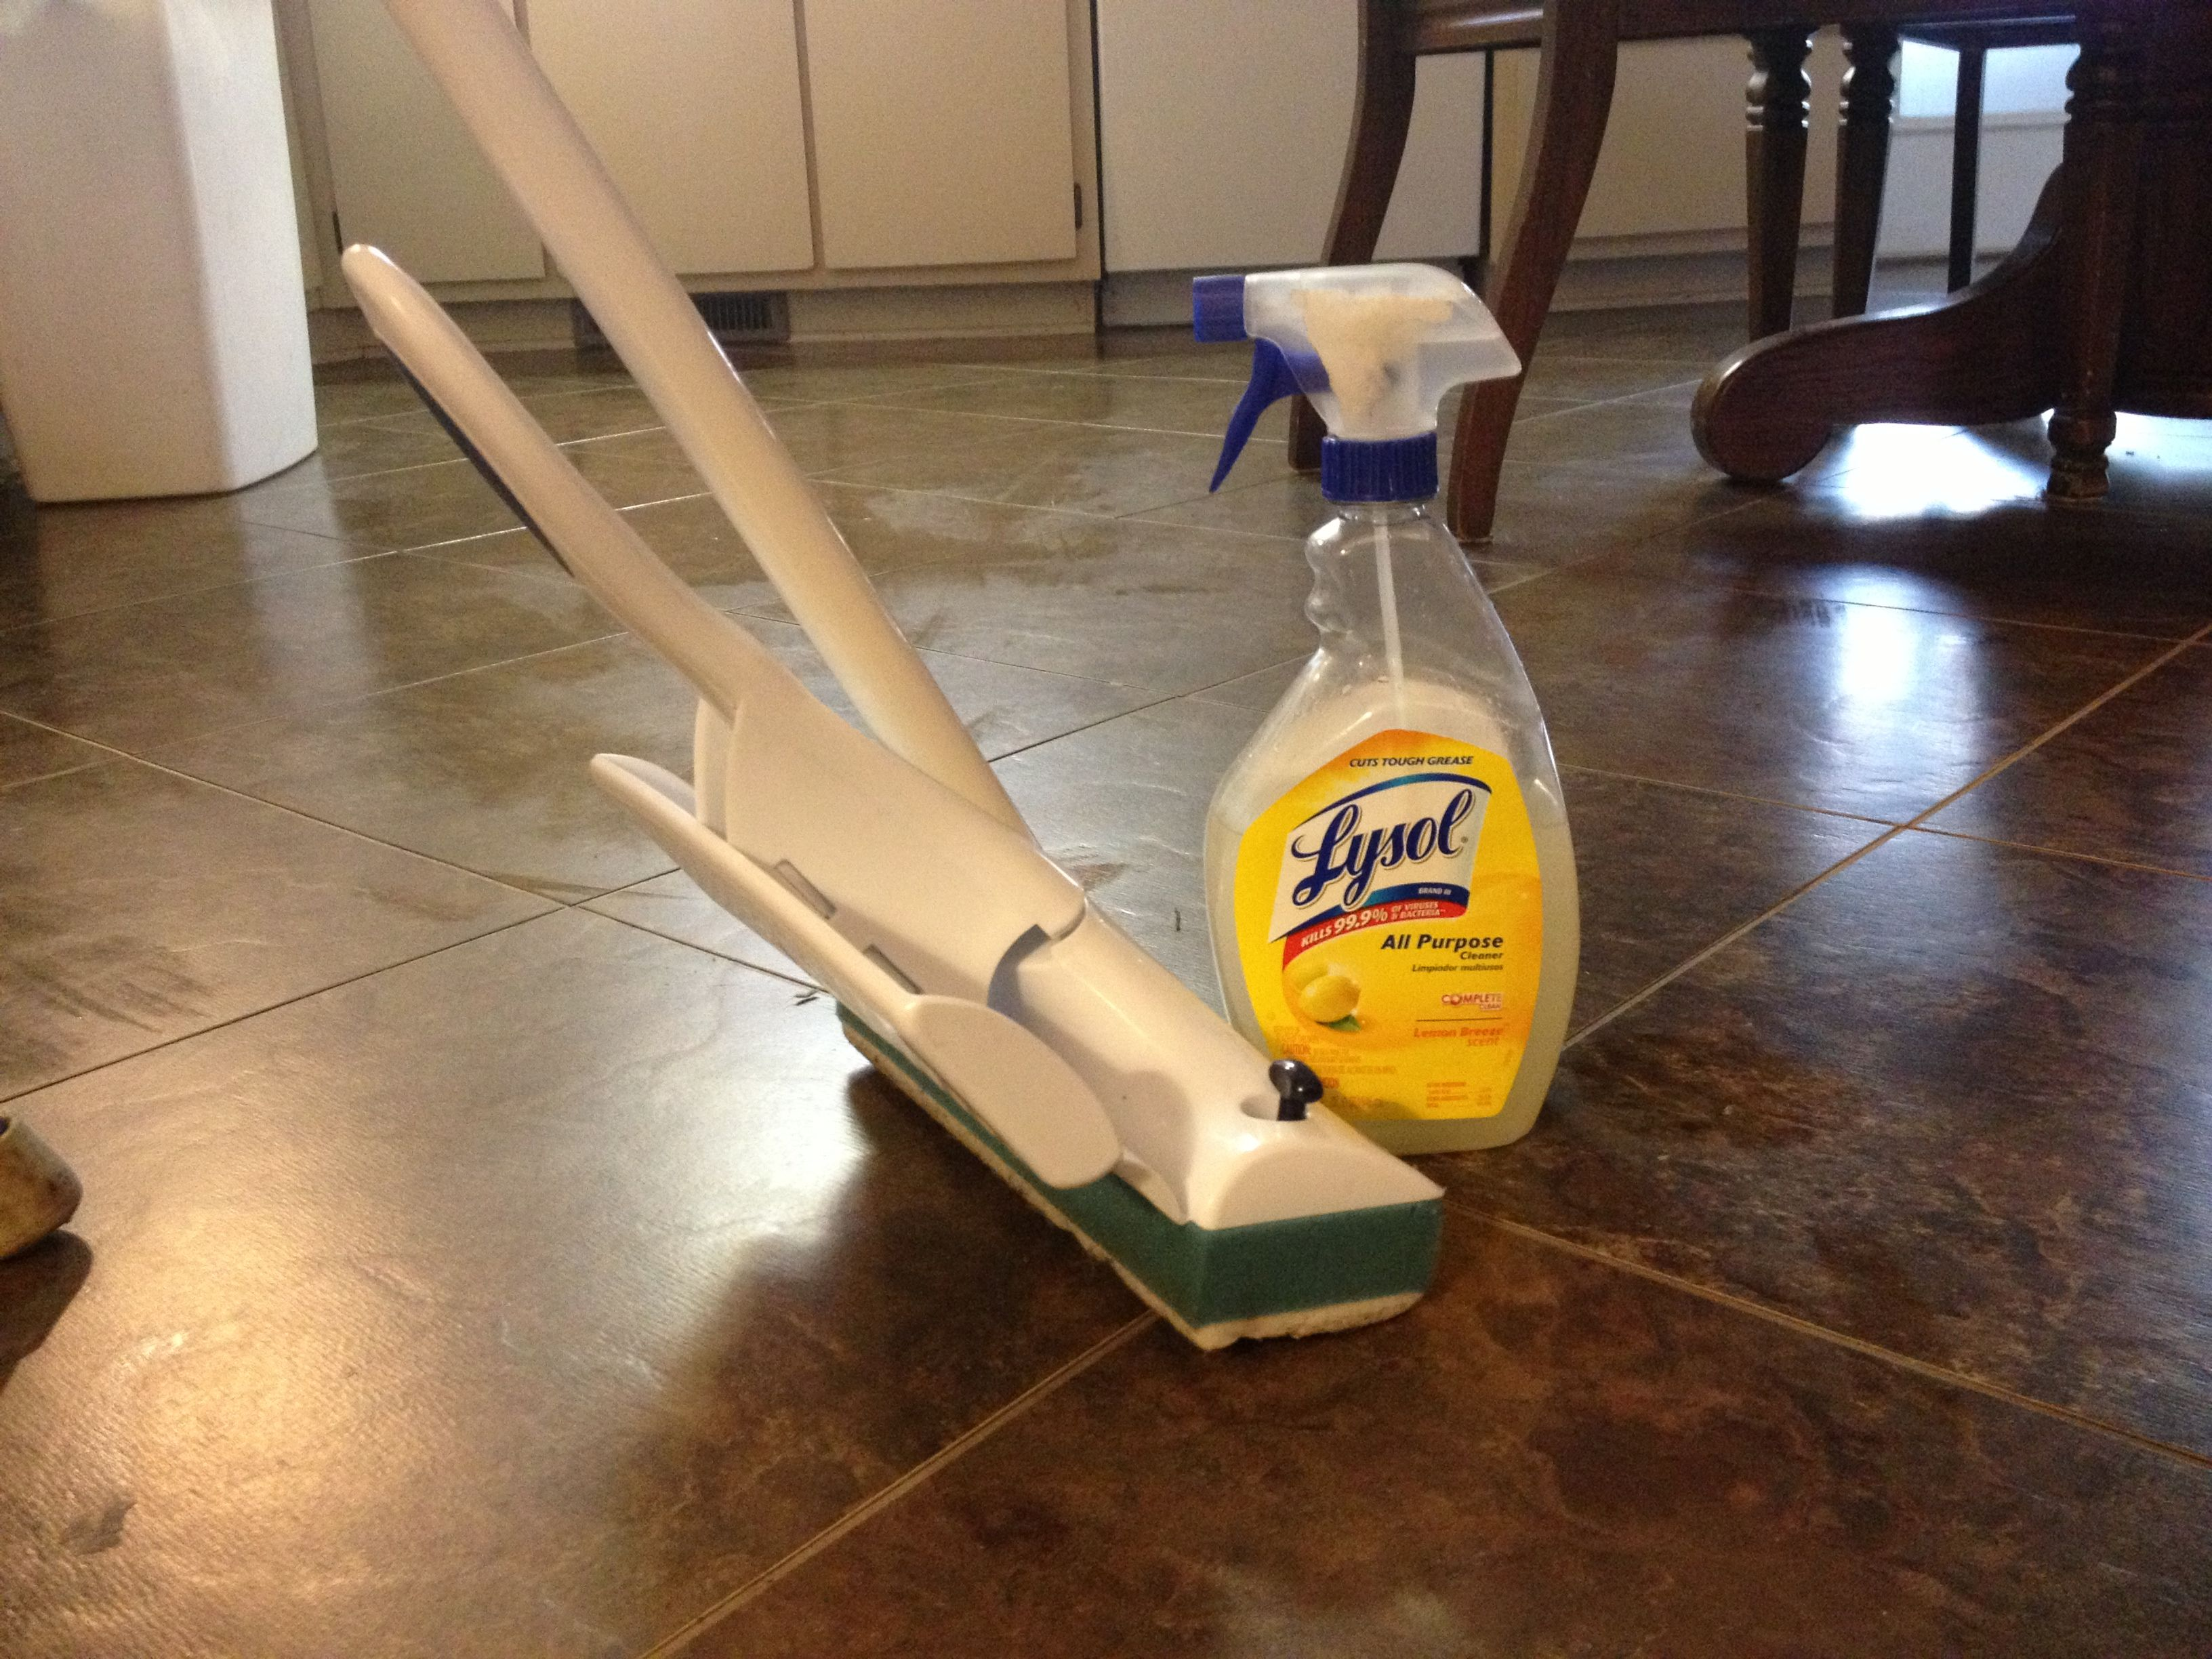 My Swiffer Wet Jet 1 2 Tbsp Pine Sol In A 1 Qt Spray